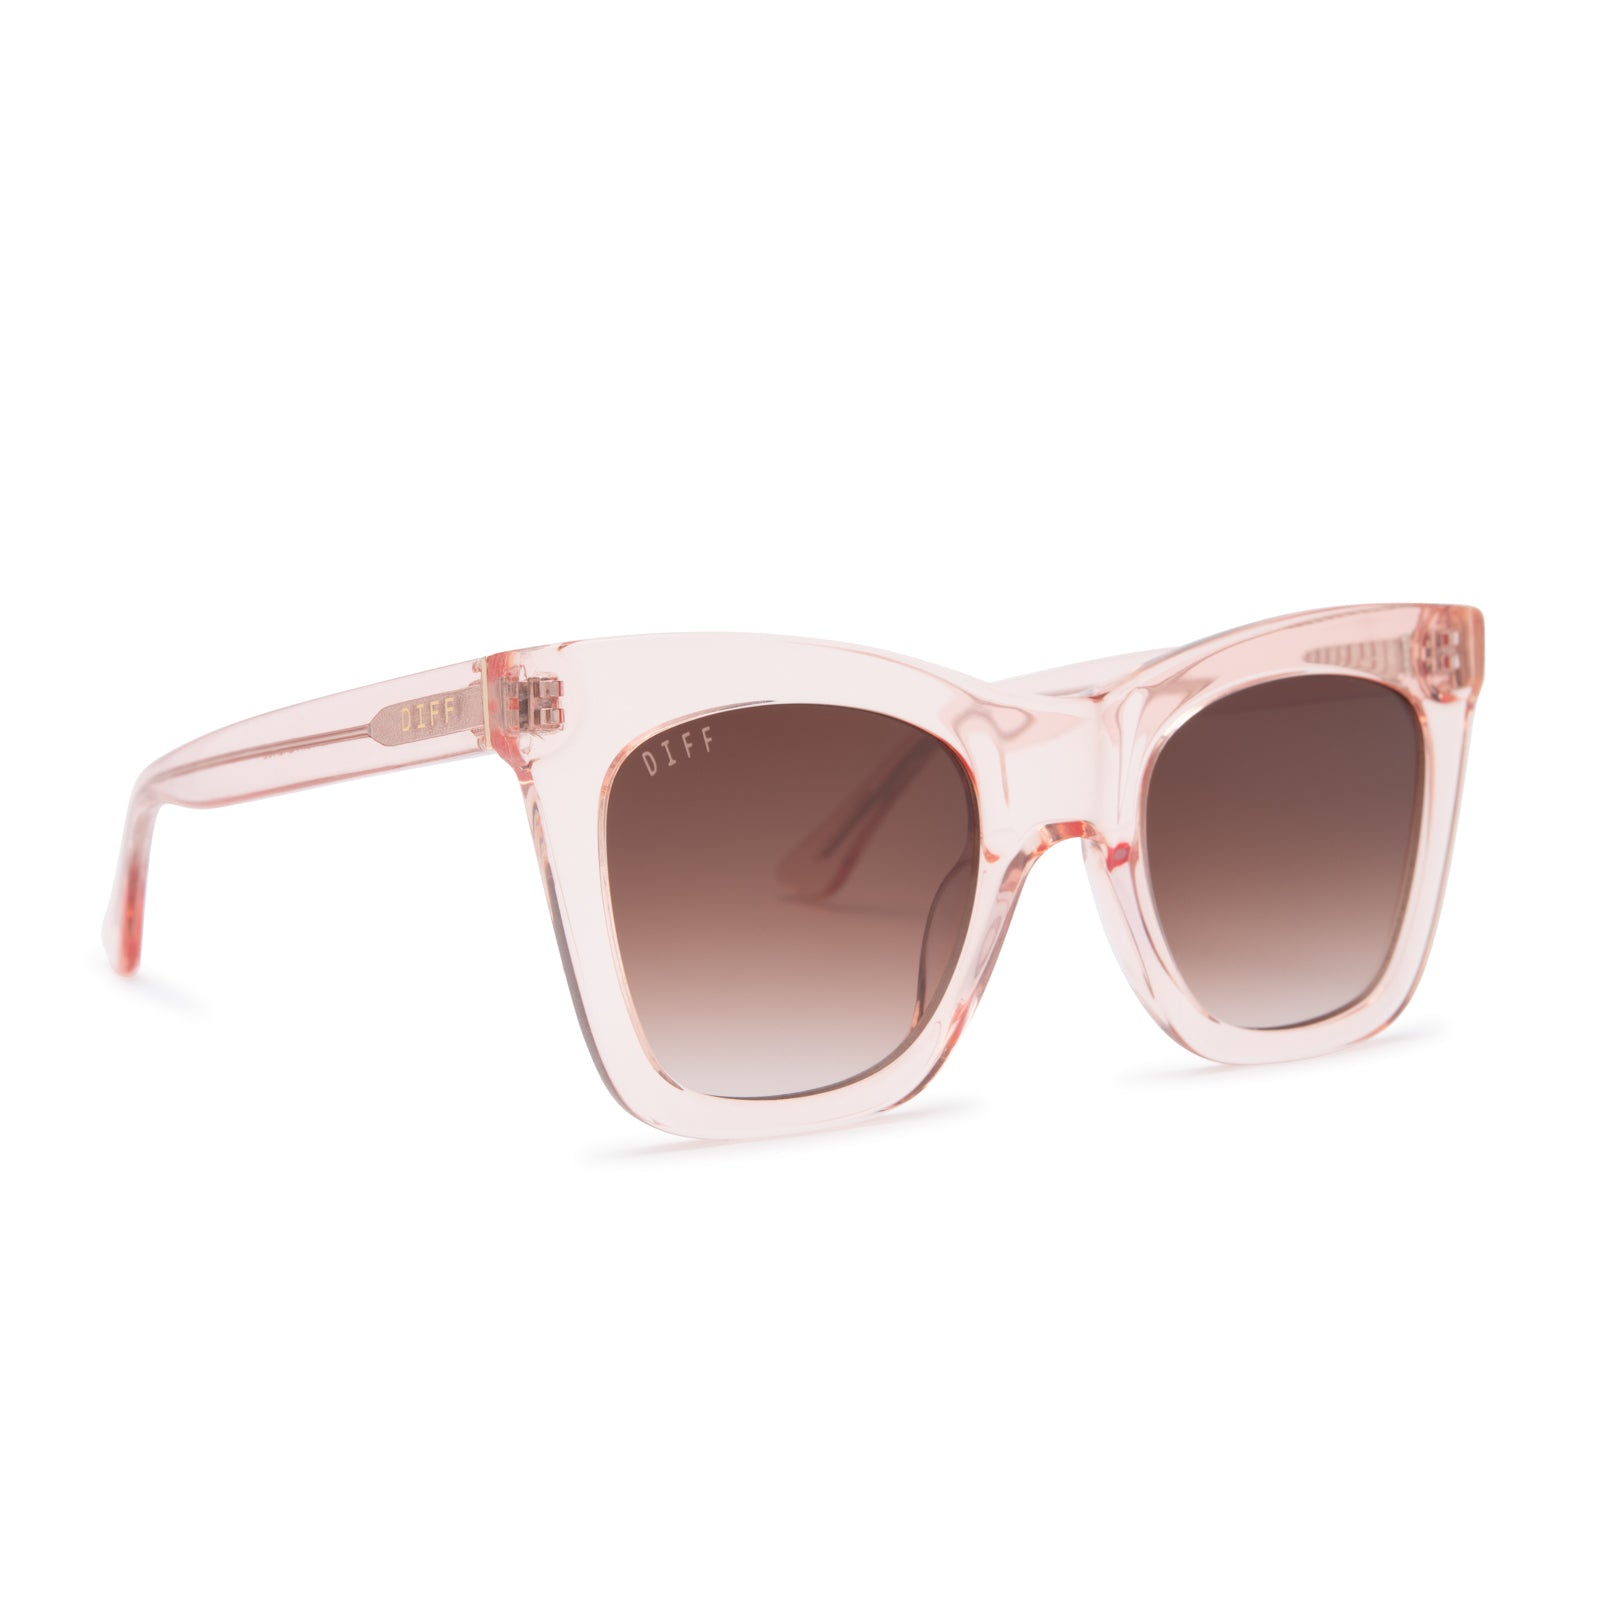 KAIA sunglasses with light pink crystal frames and brown gradient lens angle view